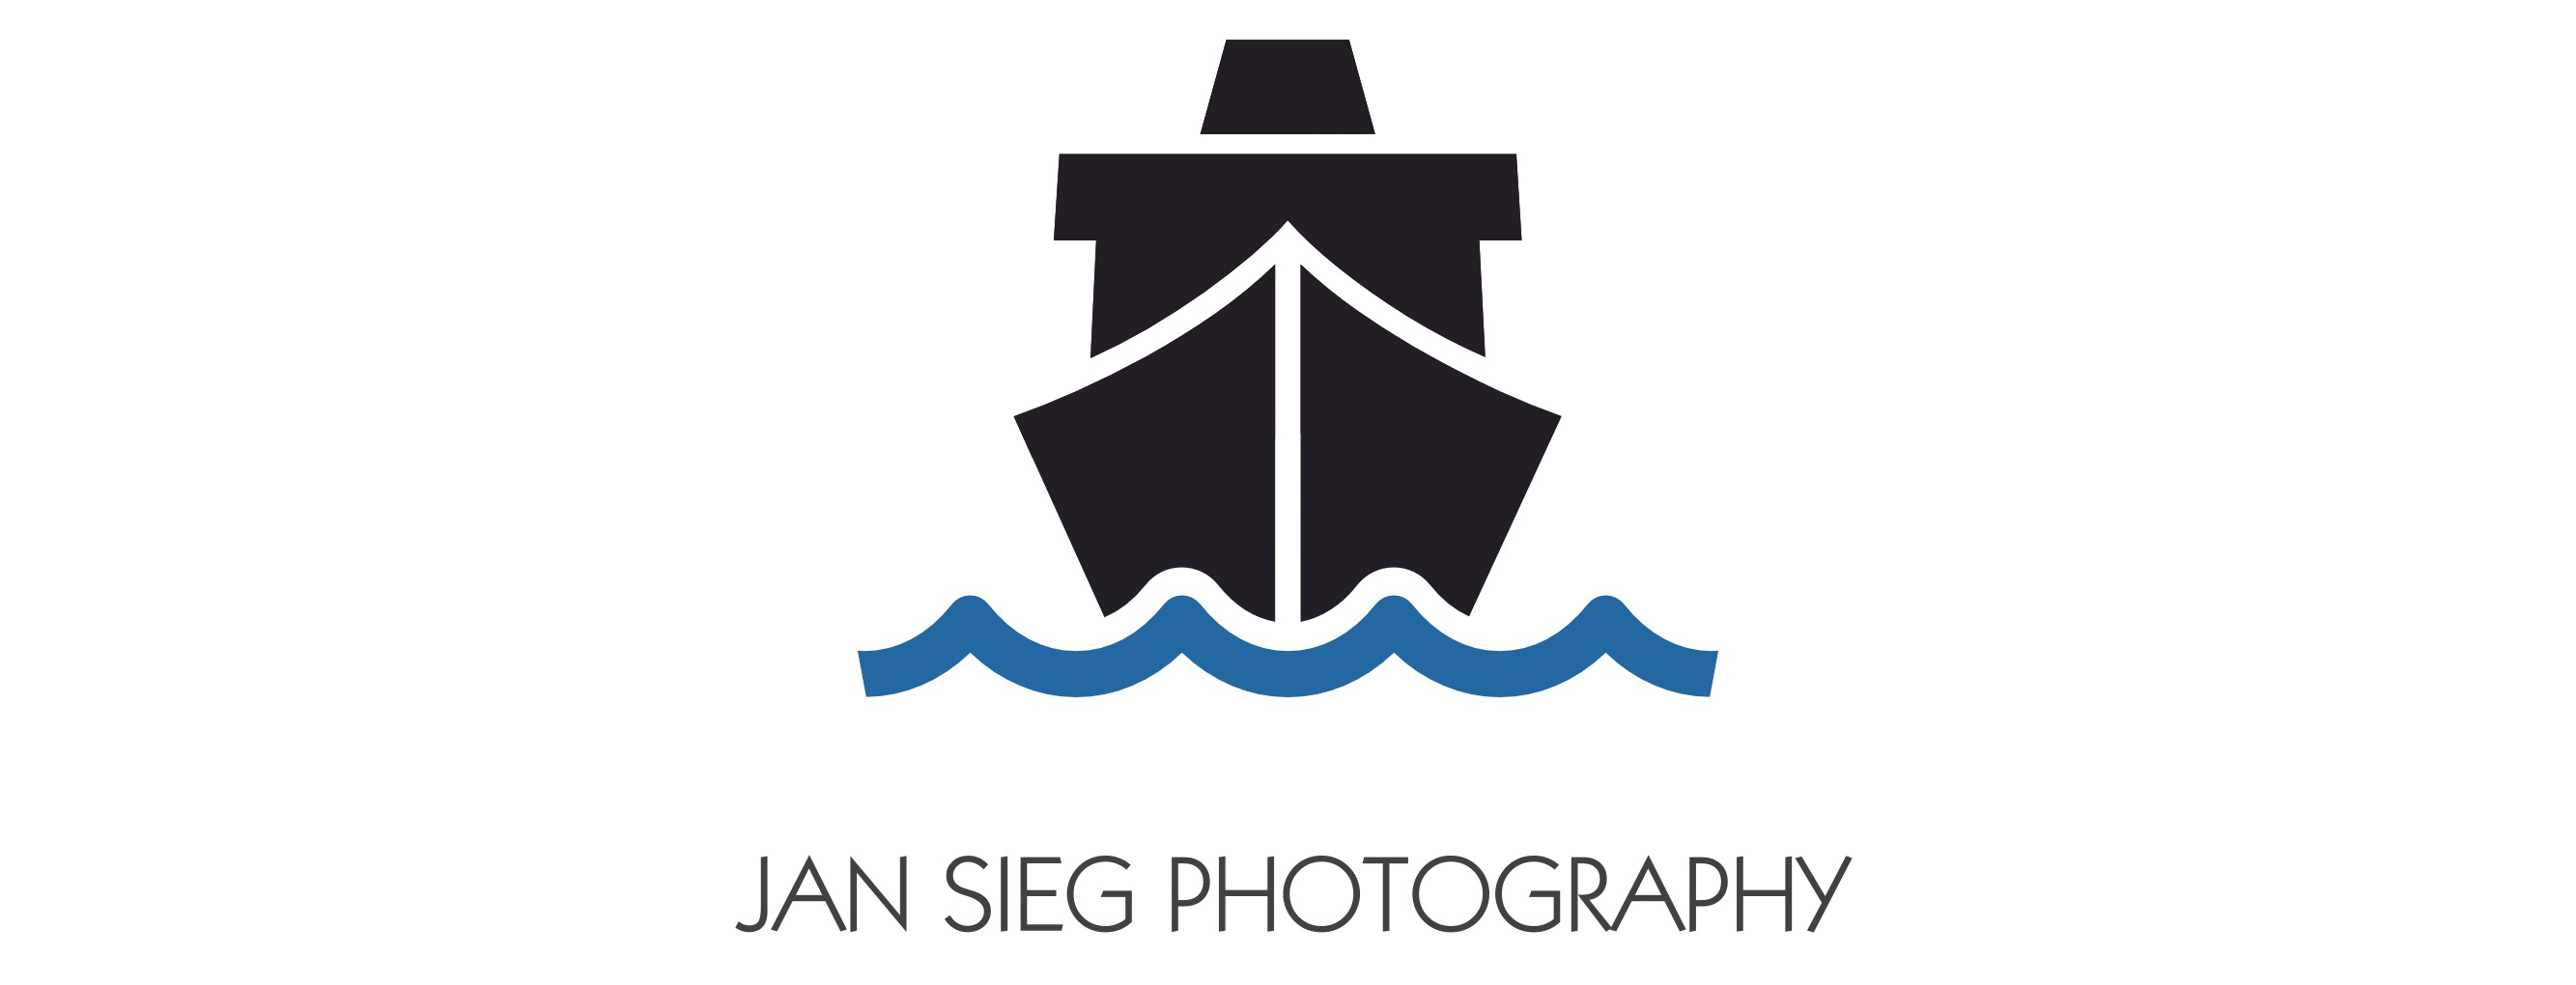 Jan Sieg Photography